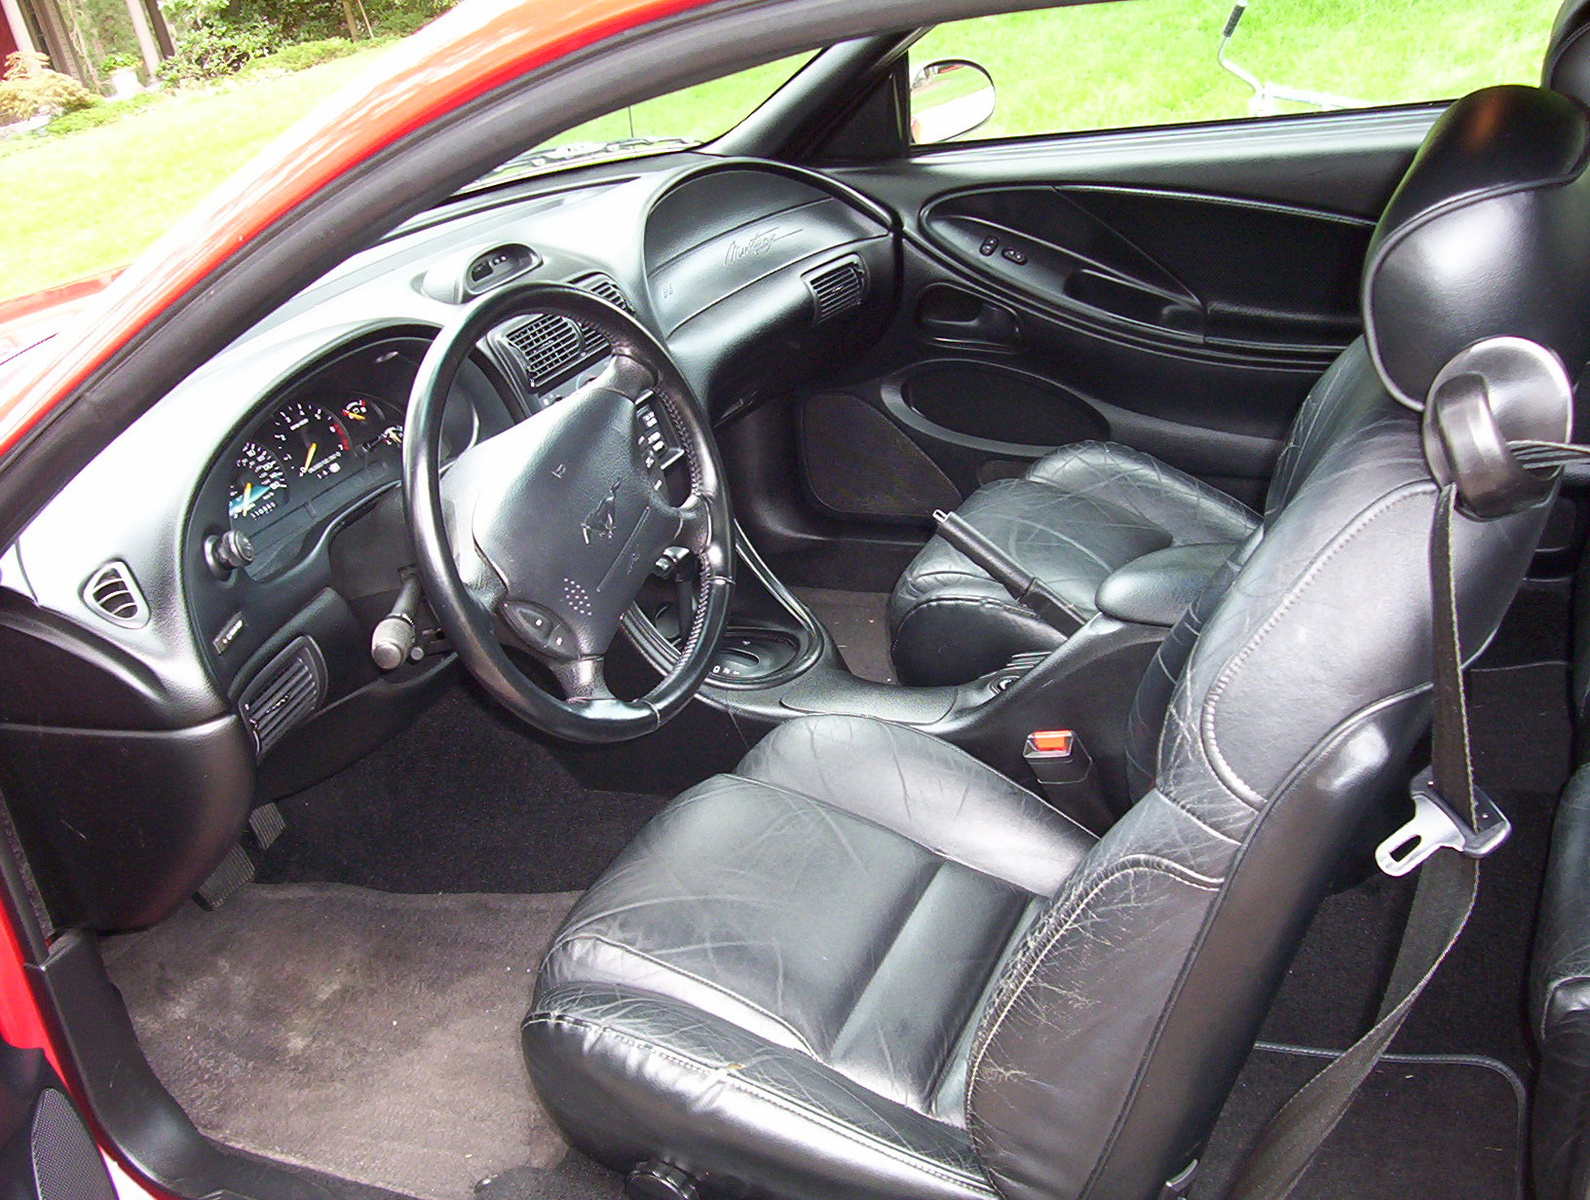 1995 Ford Mustang - Interior Pictures